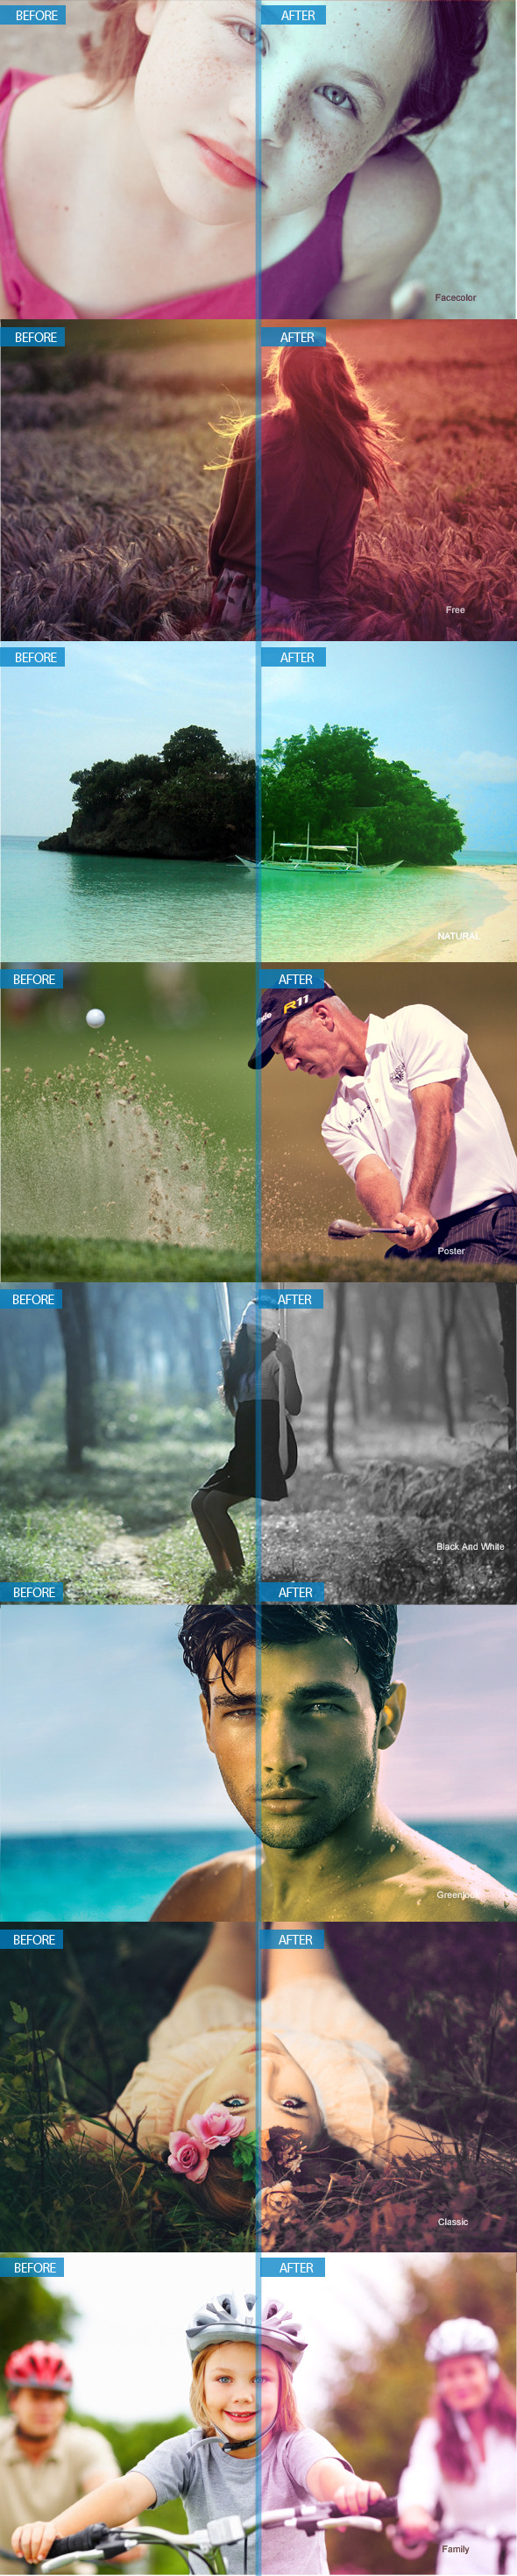 Photoshop Actions - Photo Effects Actions